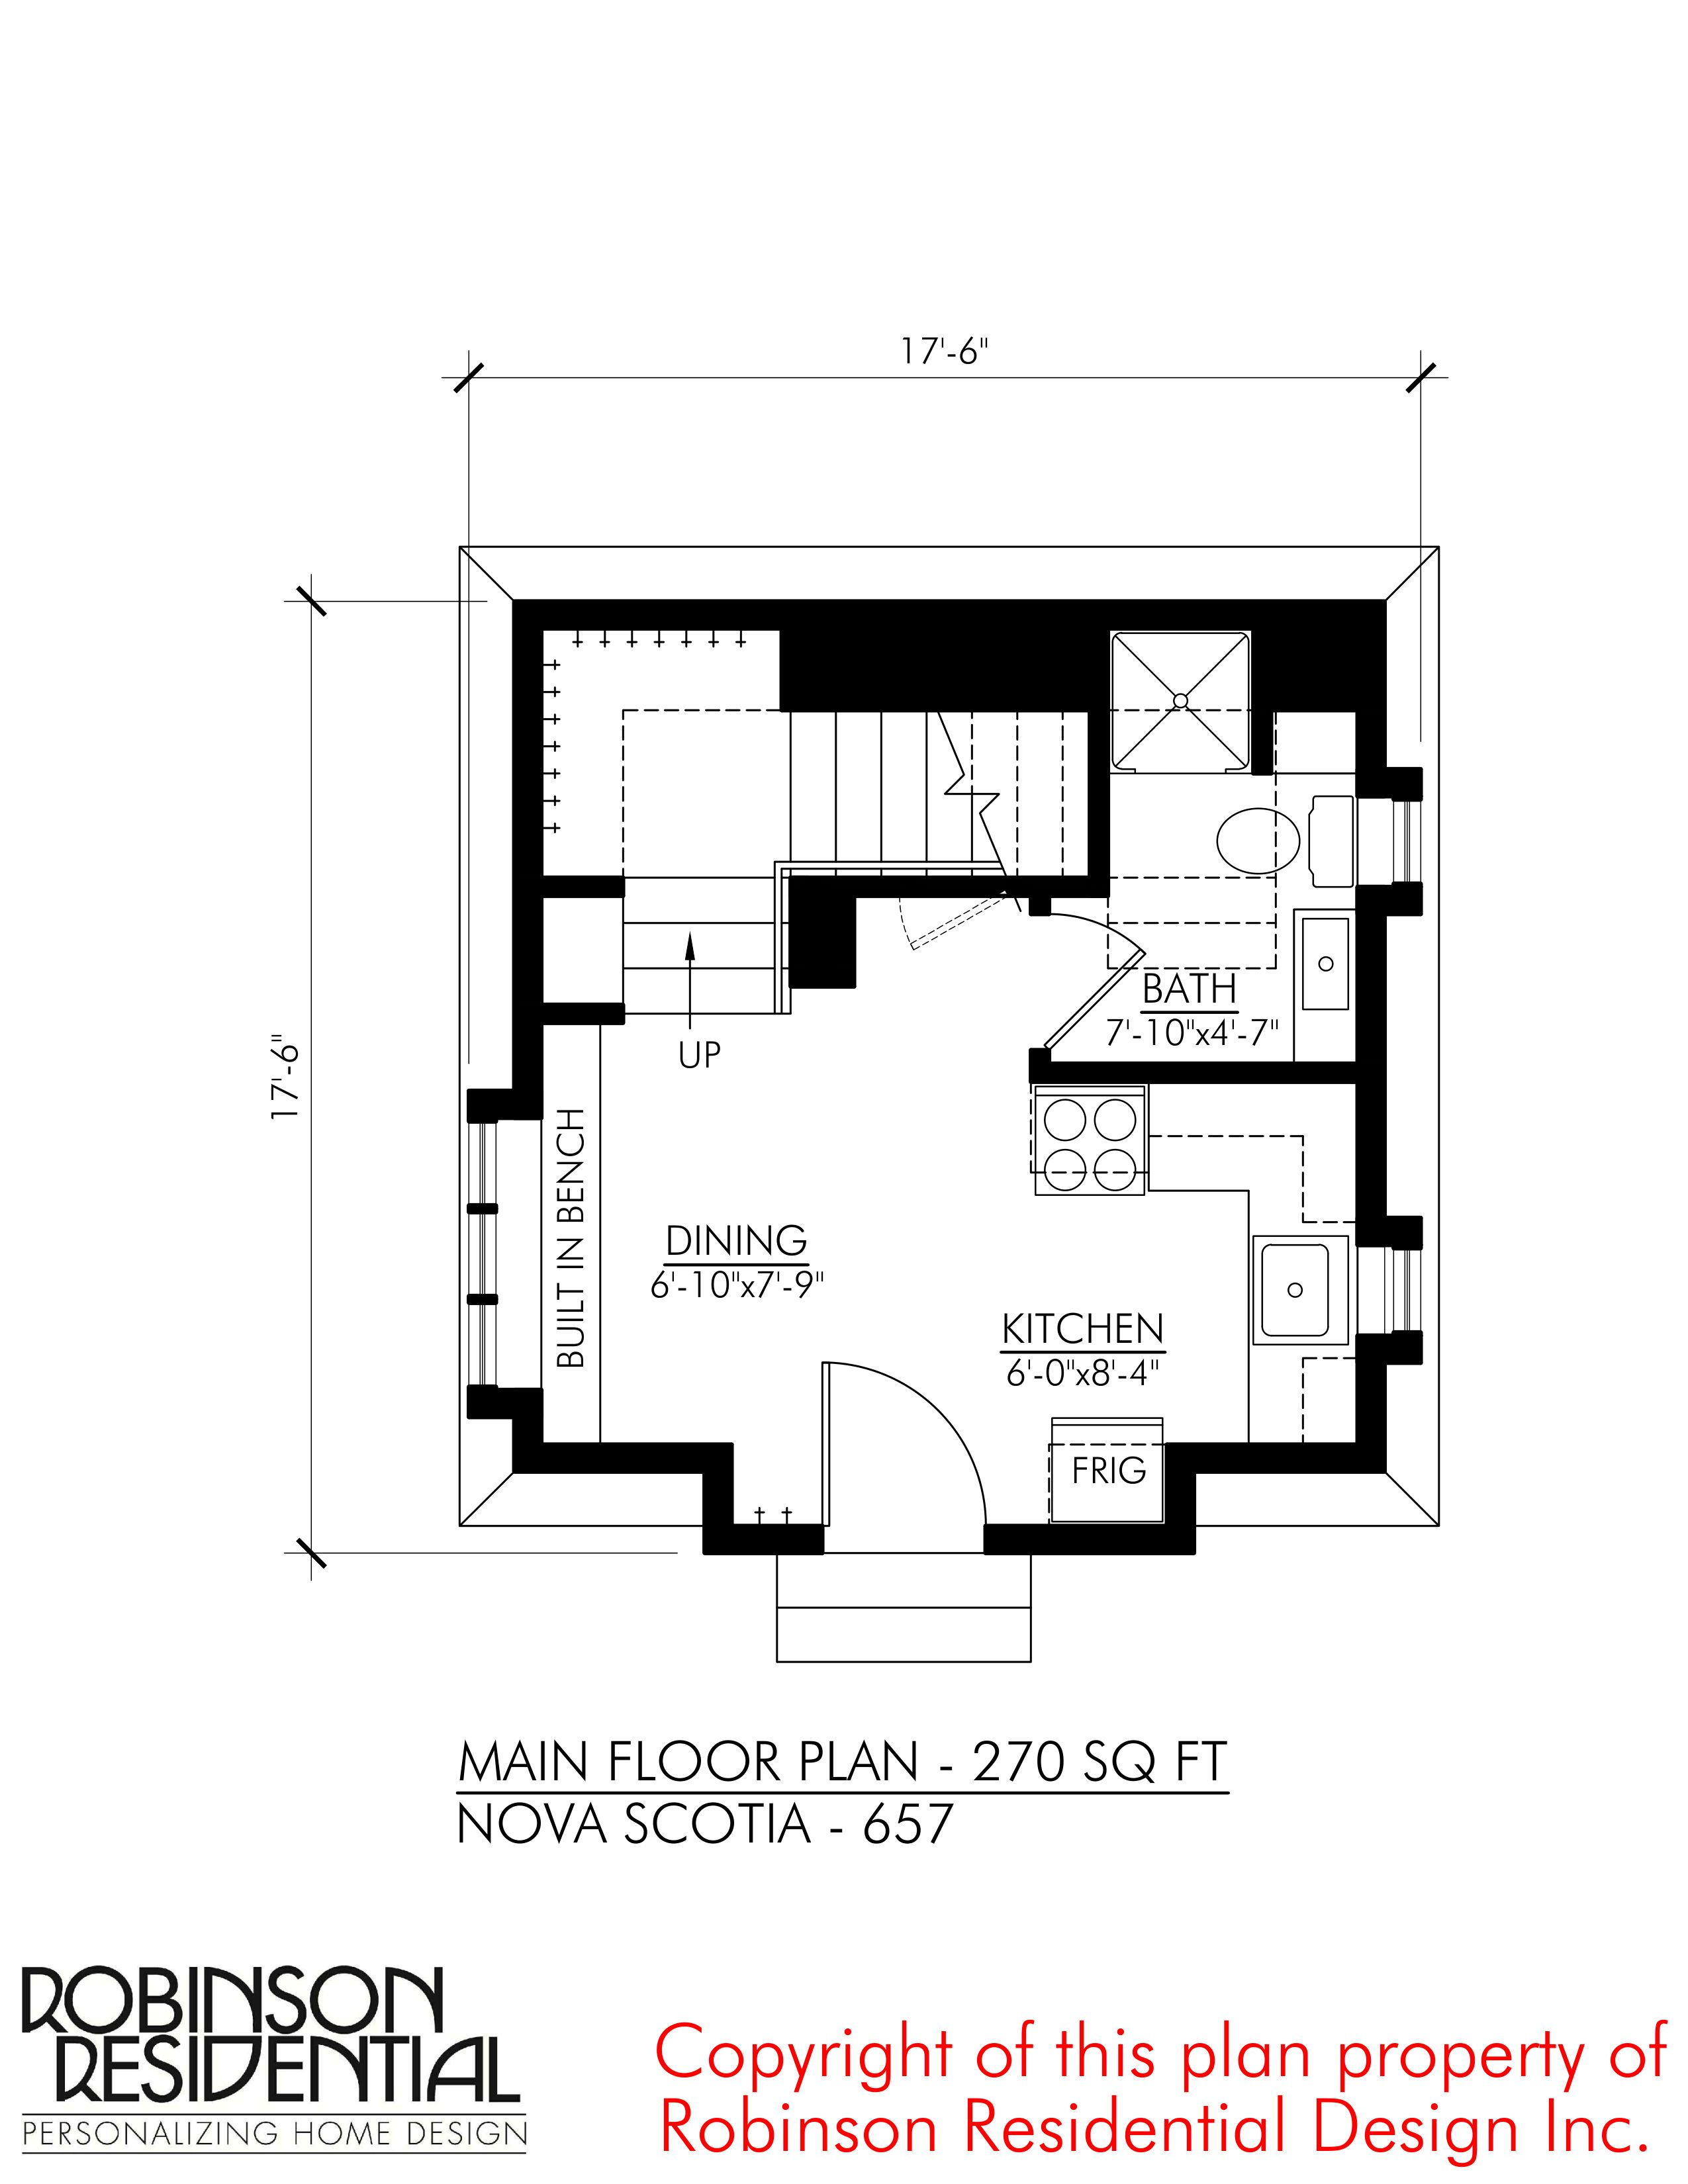 Nova scotia small house plans also best images in tiny diy ideas for rh pinterest